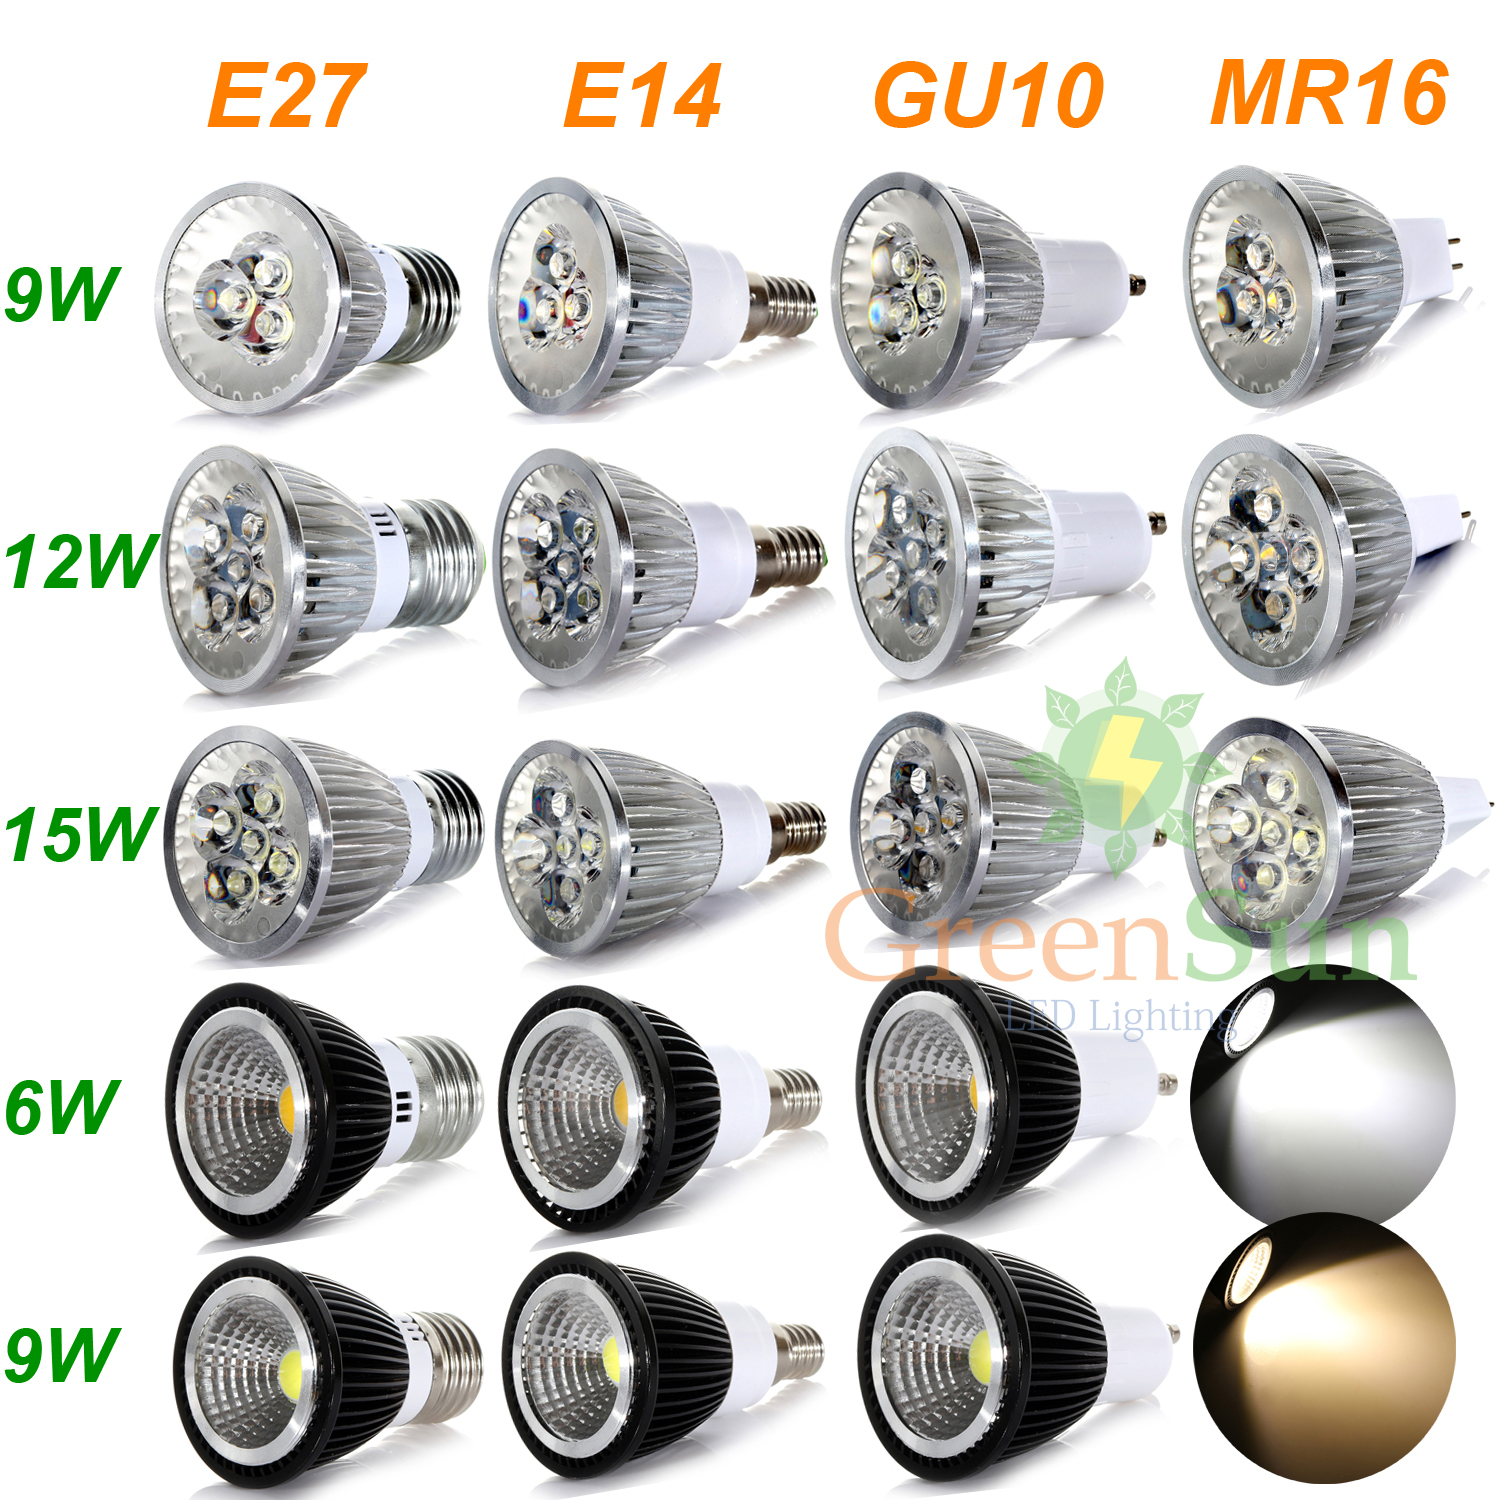 mr16 gu10 e27 e14 6w 9w 12w 15w led cob spotlight downlight spot light lamp bulb ebay. Black Bedroom Furniture Sets. Home Design Ideas